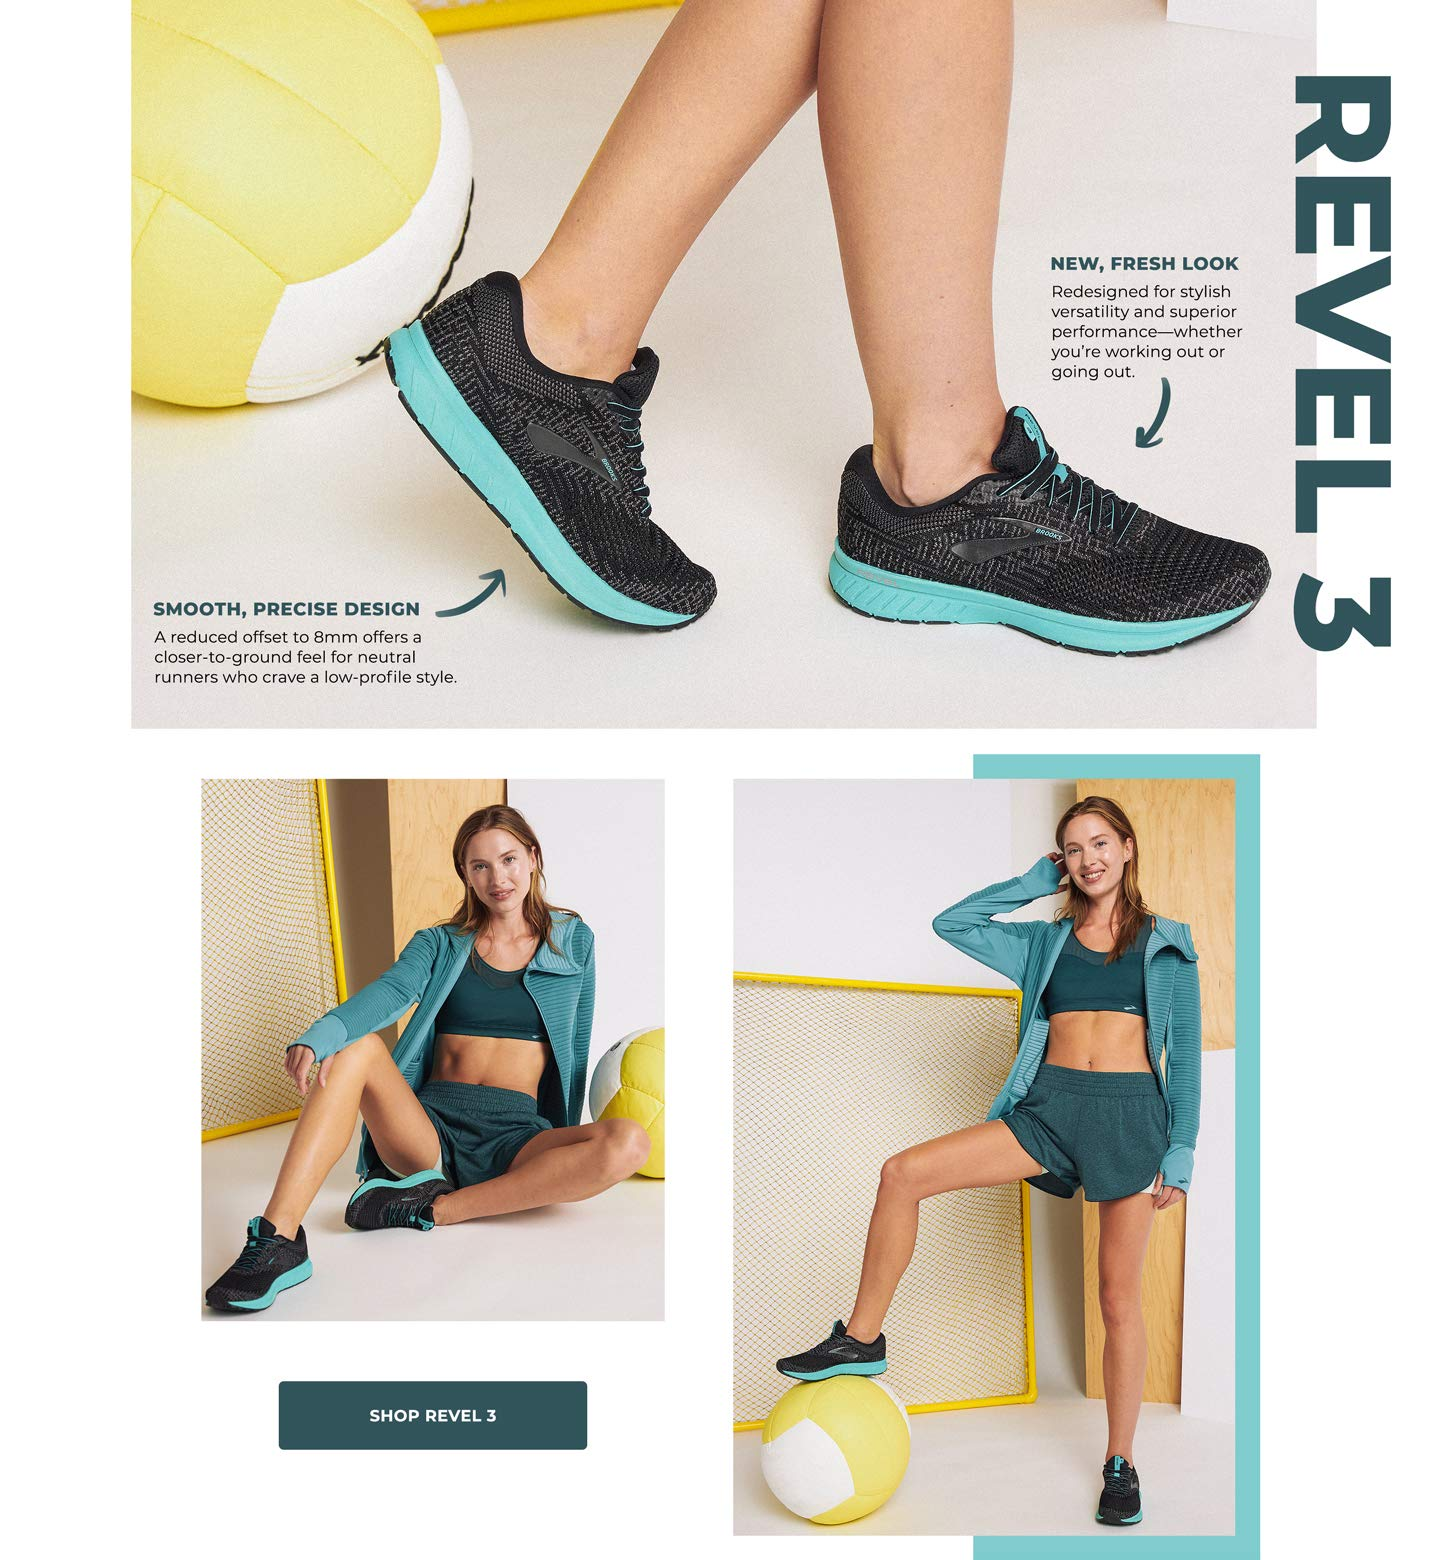 REVEL 3. New, Fresh Look. Redesigned for stylish versatility and superior performance—whether you're working out or going out. Smooth, Precise Design. A reduced offset to 8mm offers a closer-to-ground feel for neutral runners who crave a low-profile style. Shop REVEL 3.